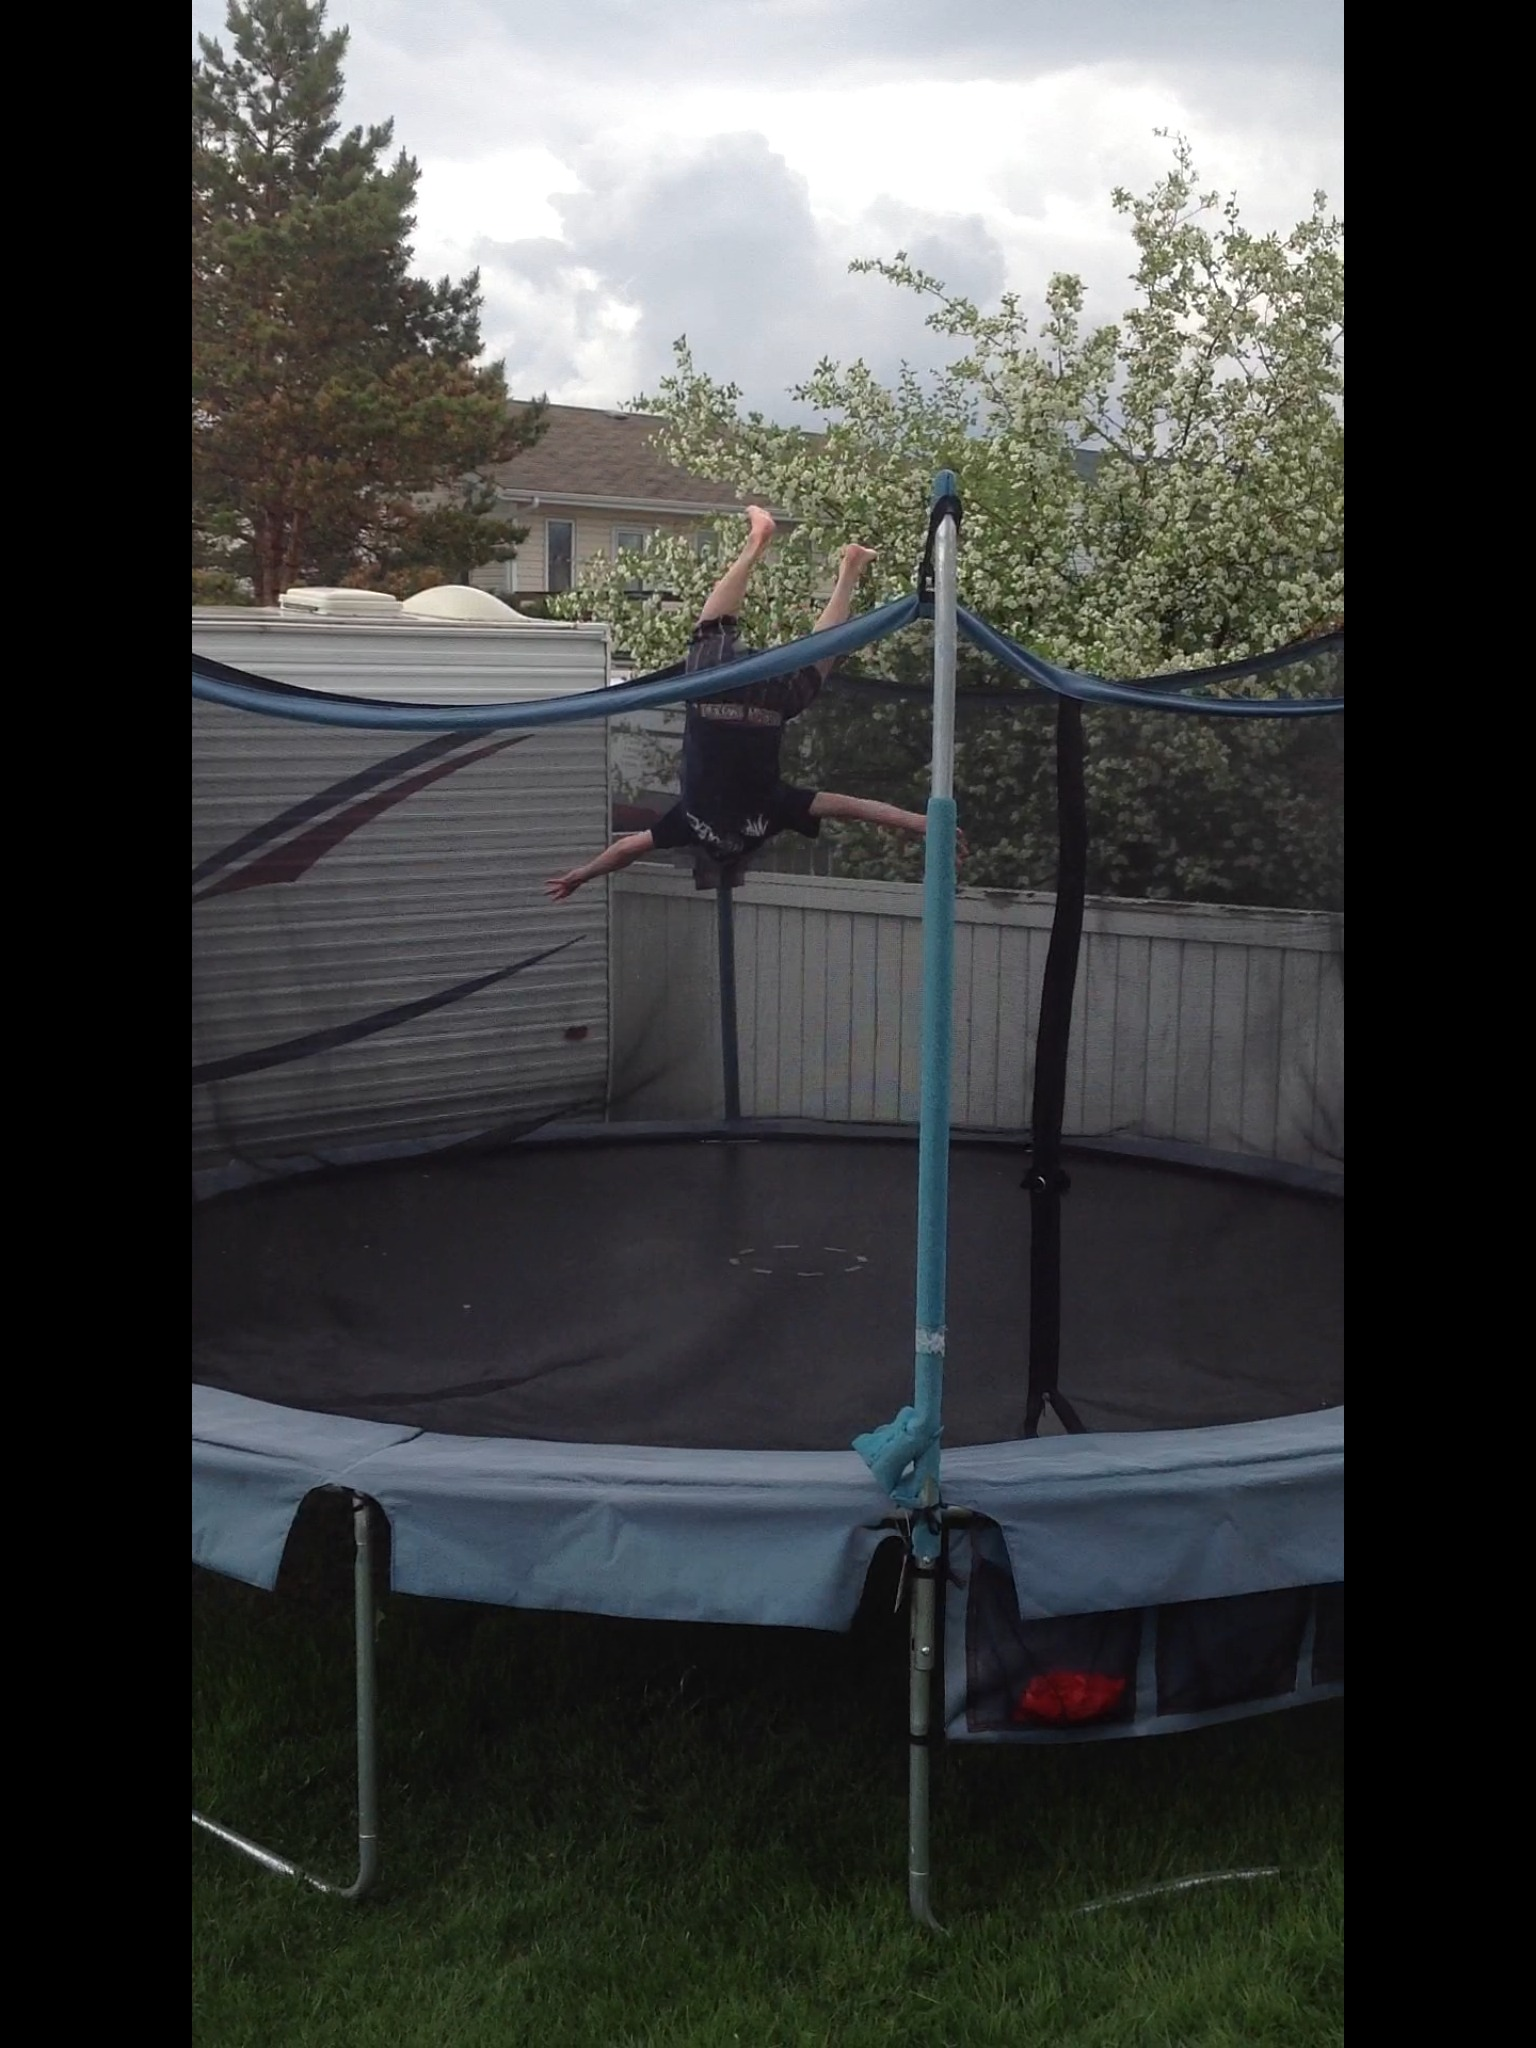 How To Backflip On A Tramp